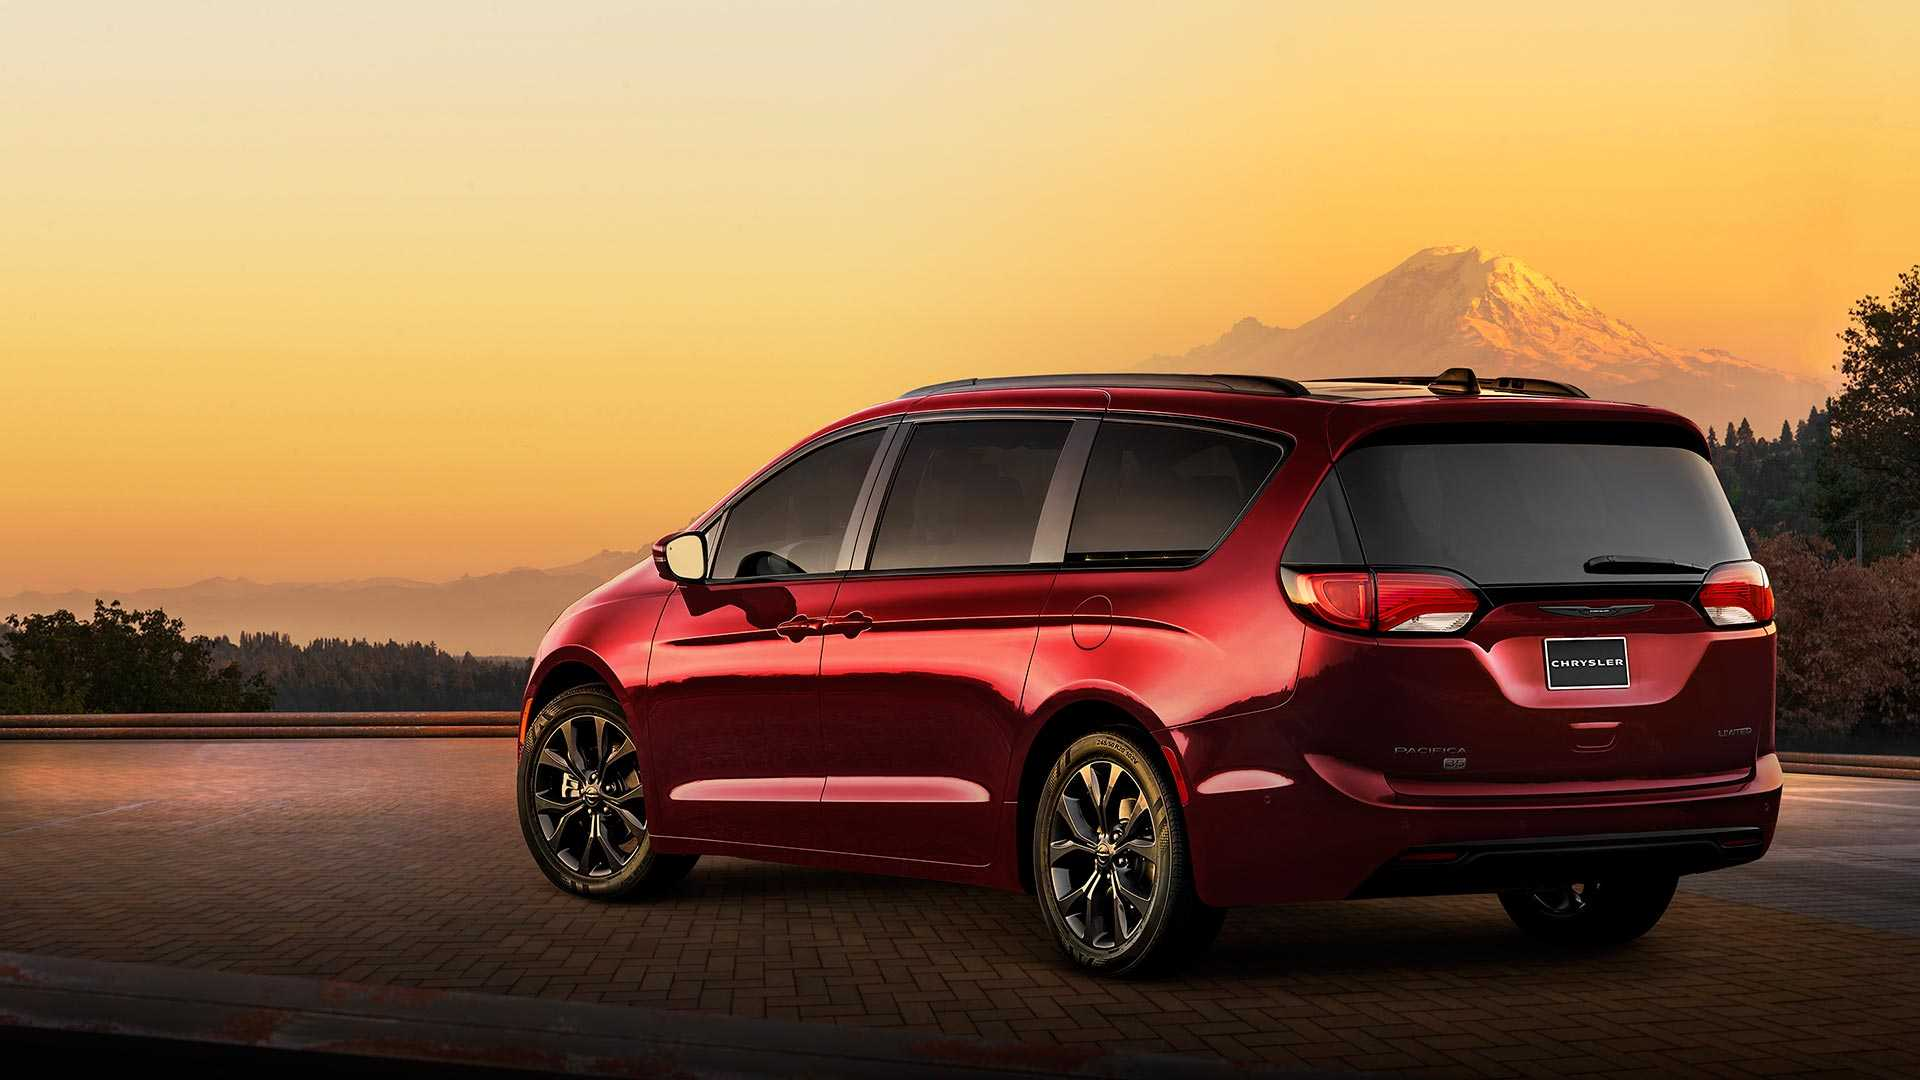 92 The Best 2020 Chrysler Town Country Awd New Concept